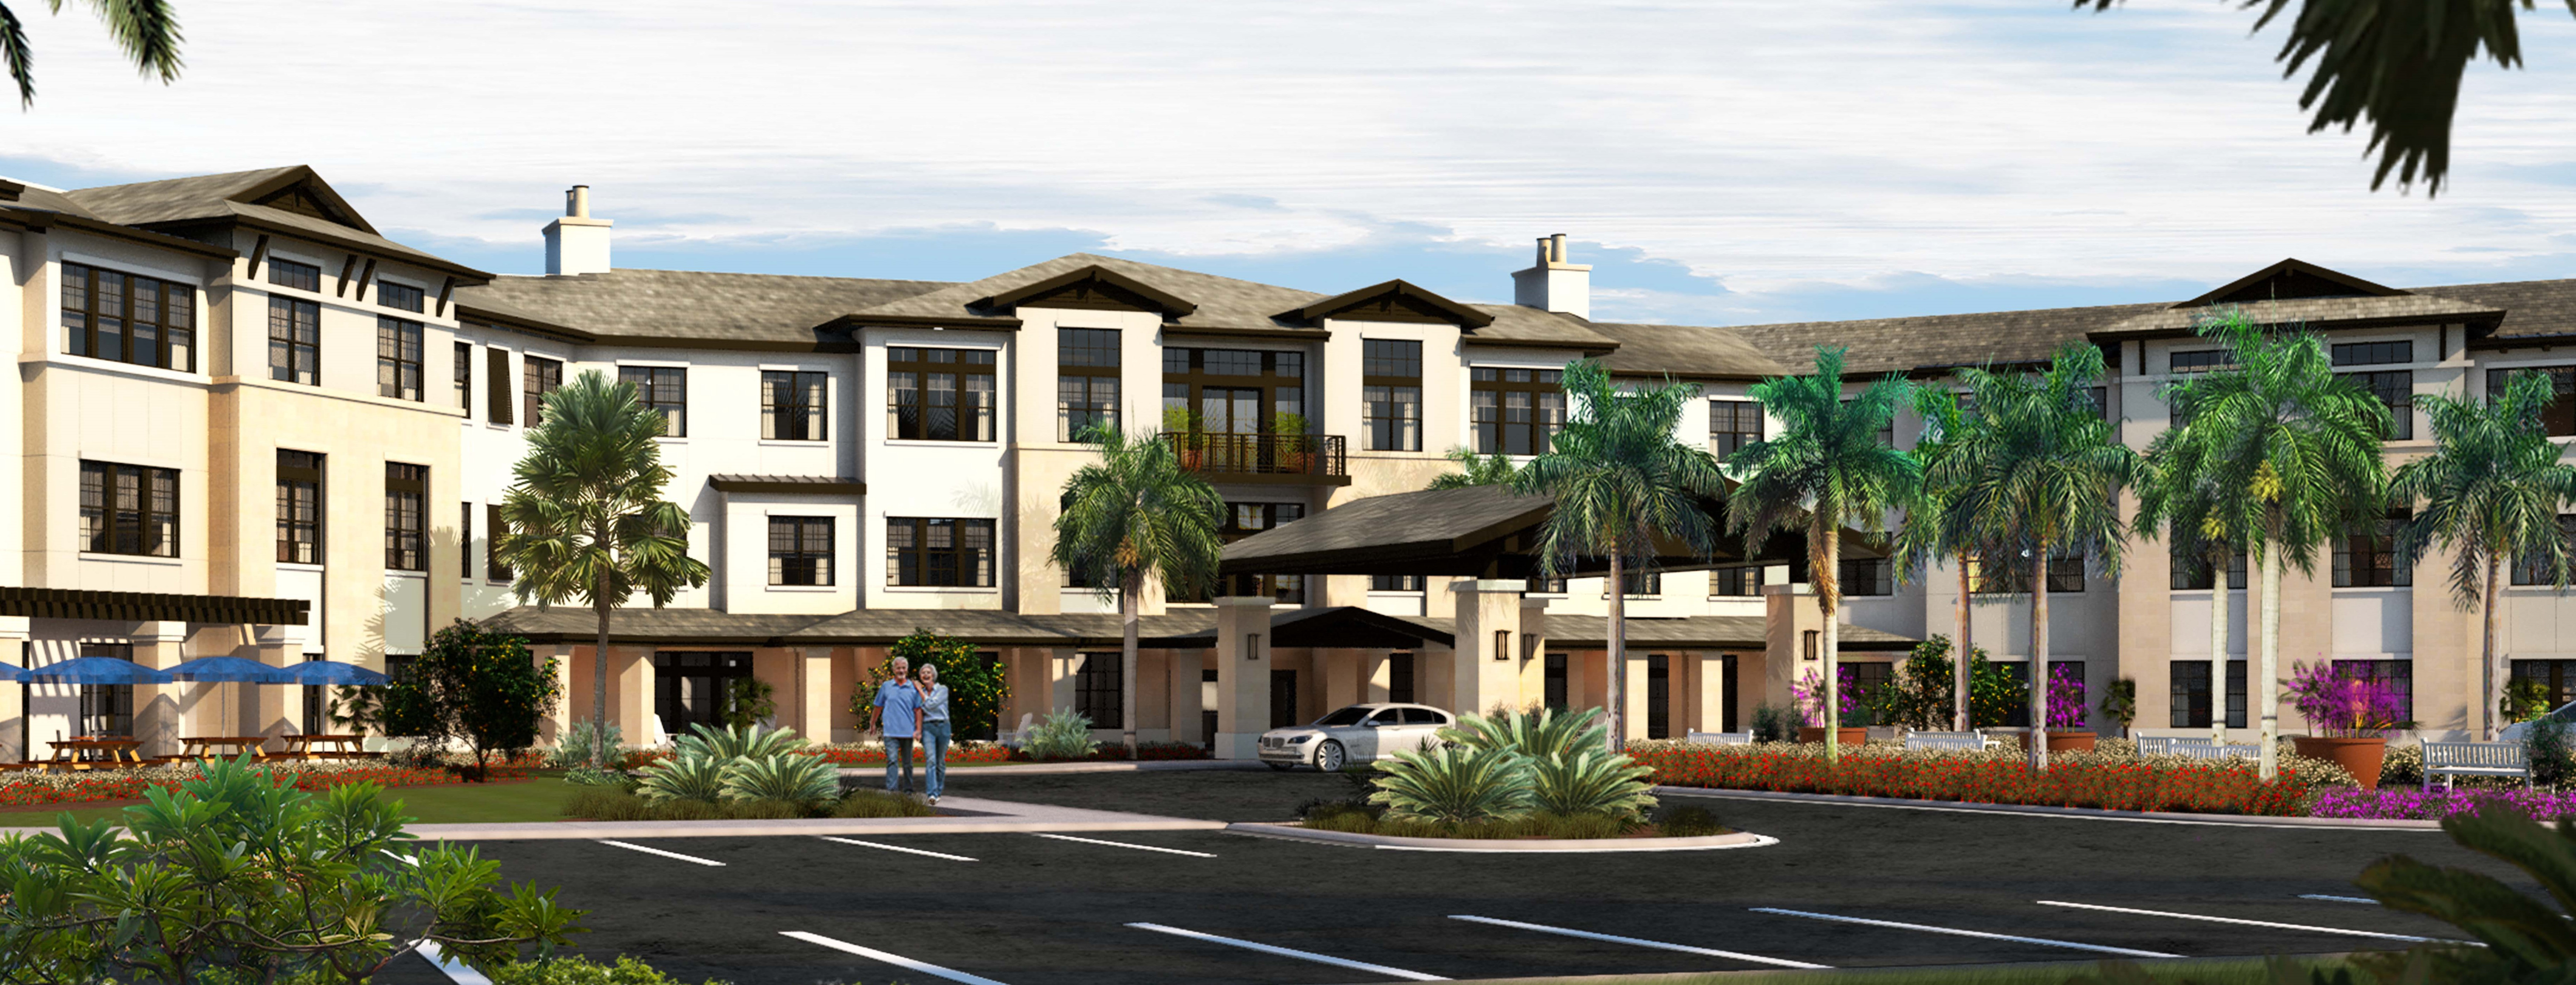 Starling Independent Living at Nocatee